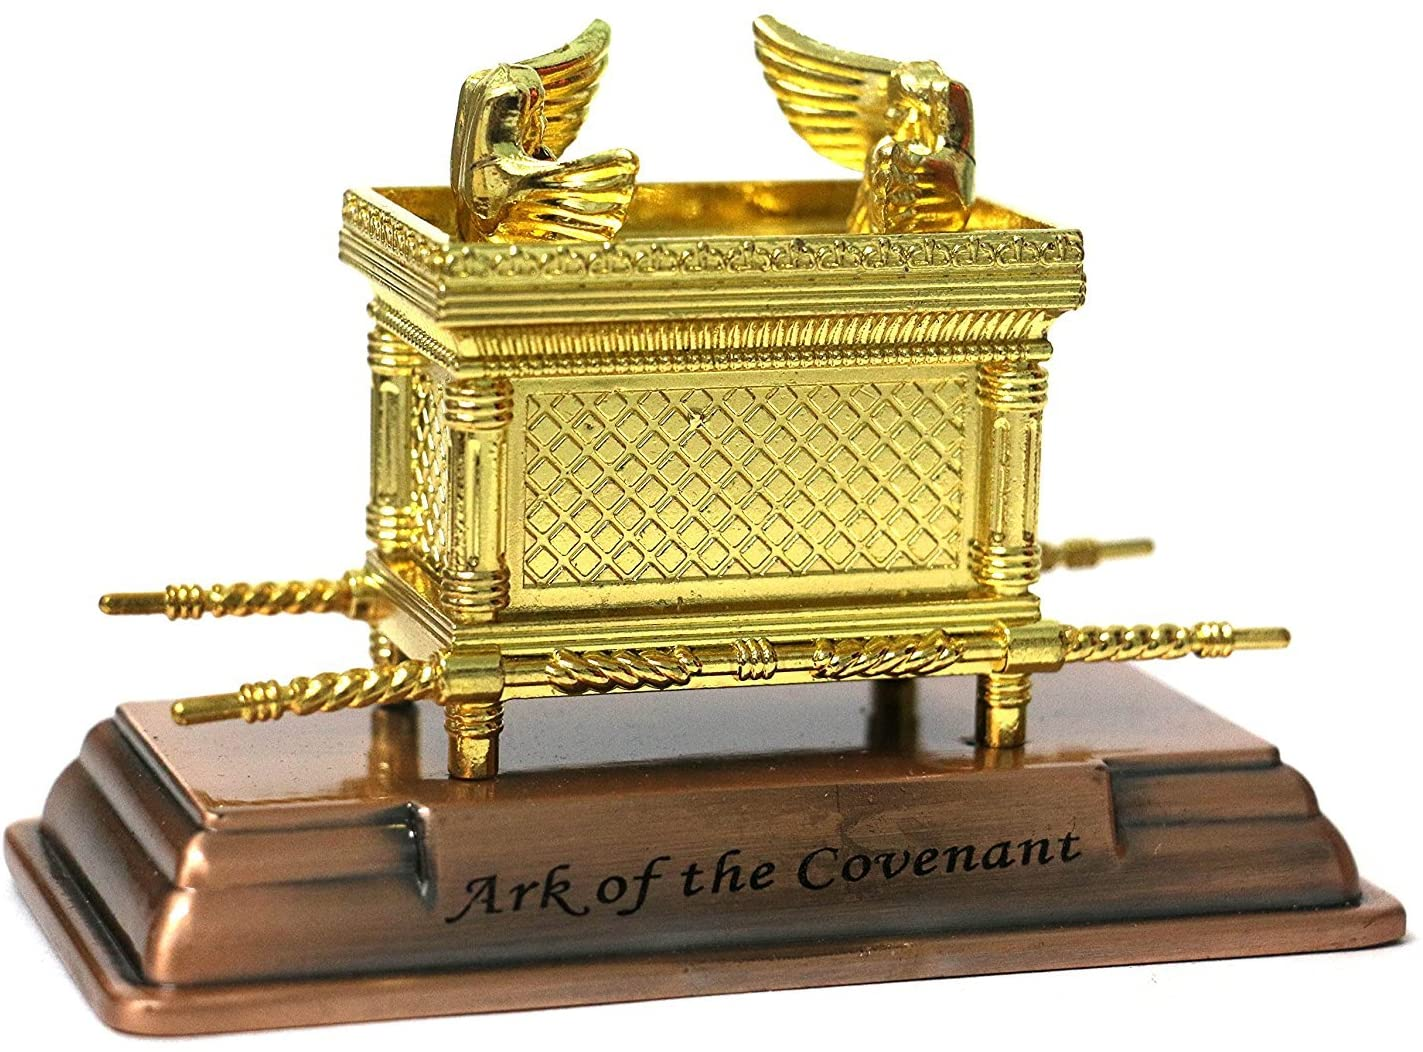 The Ark of the Covenant Gold Plated Table Top Mini - 2